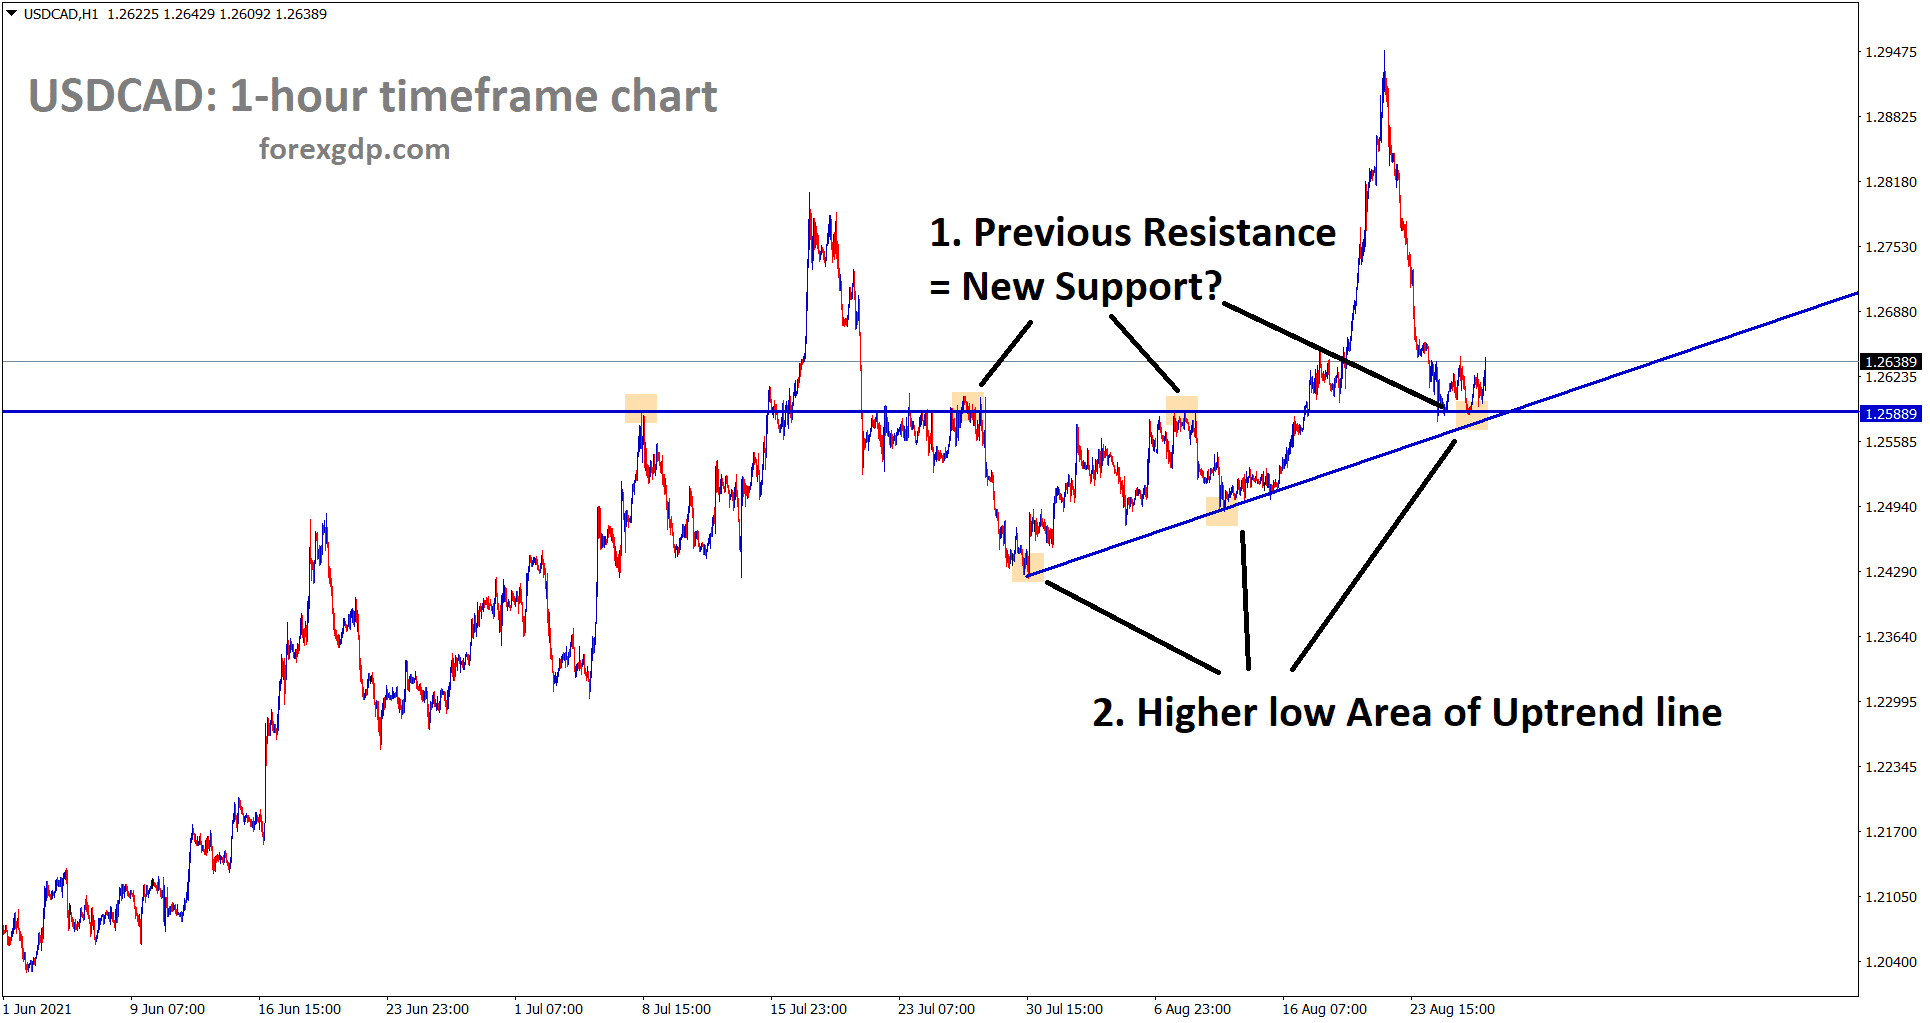 USDCAD hits the support area where previous resistance turned into support and also it is near to the higher low level of the uptrend line